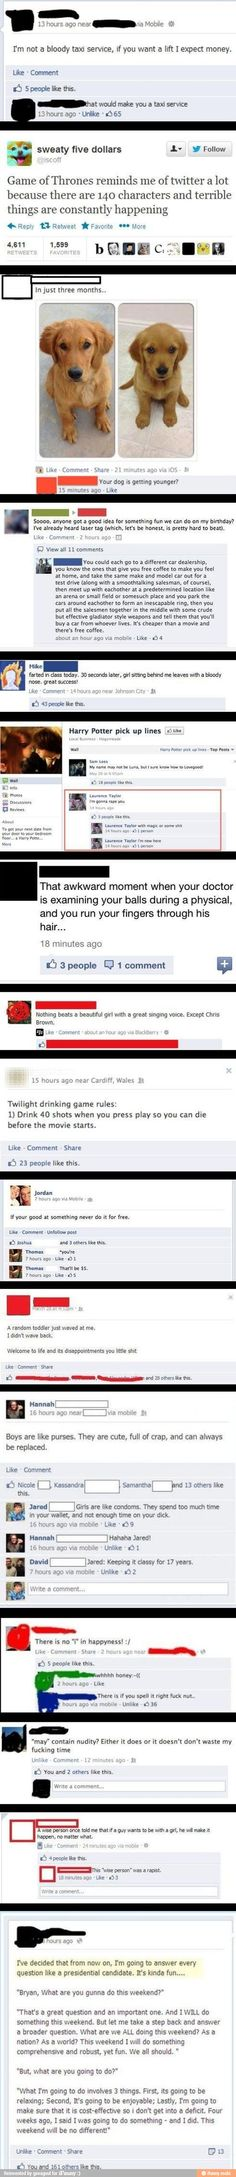 Facebook.... the last one is the best!